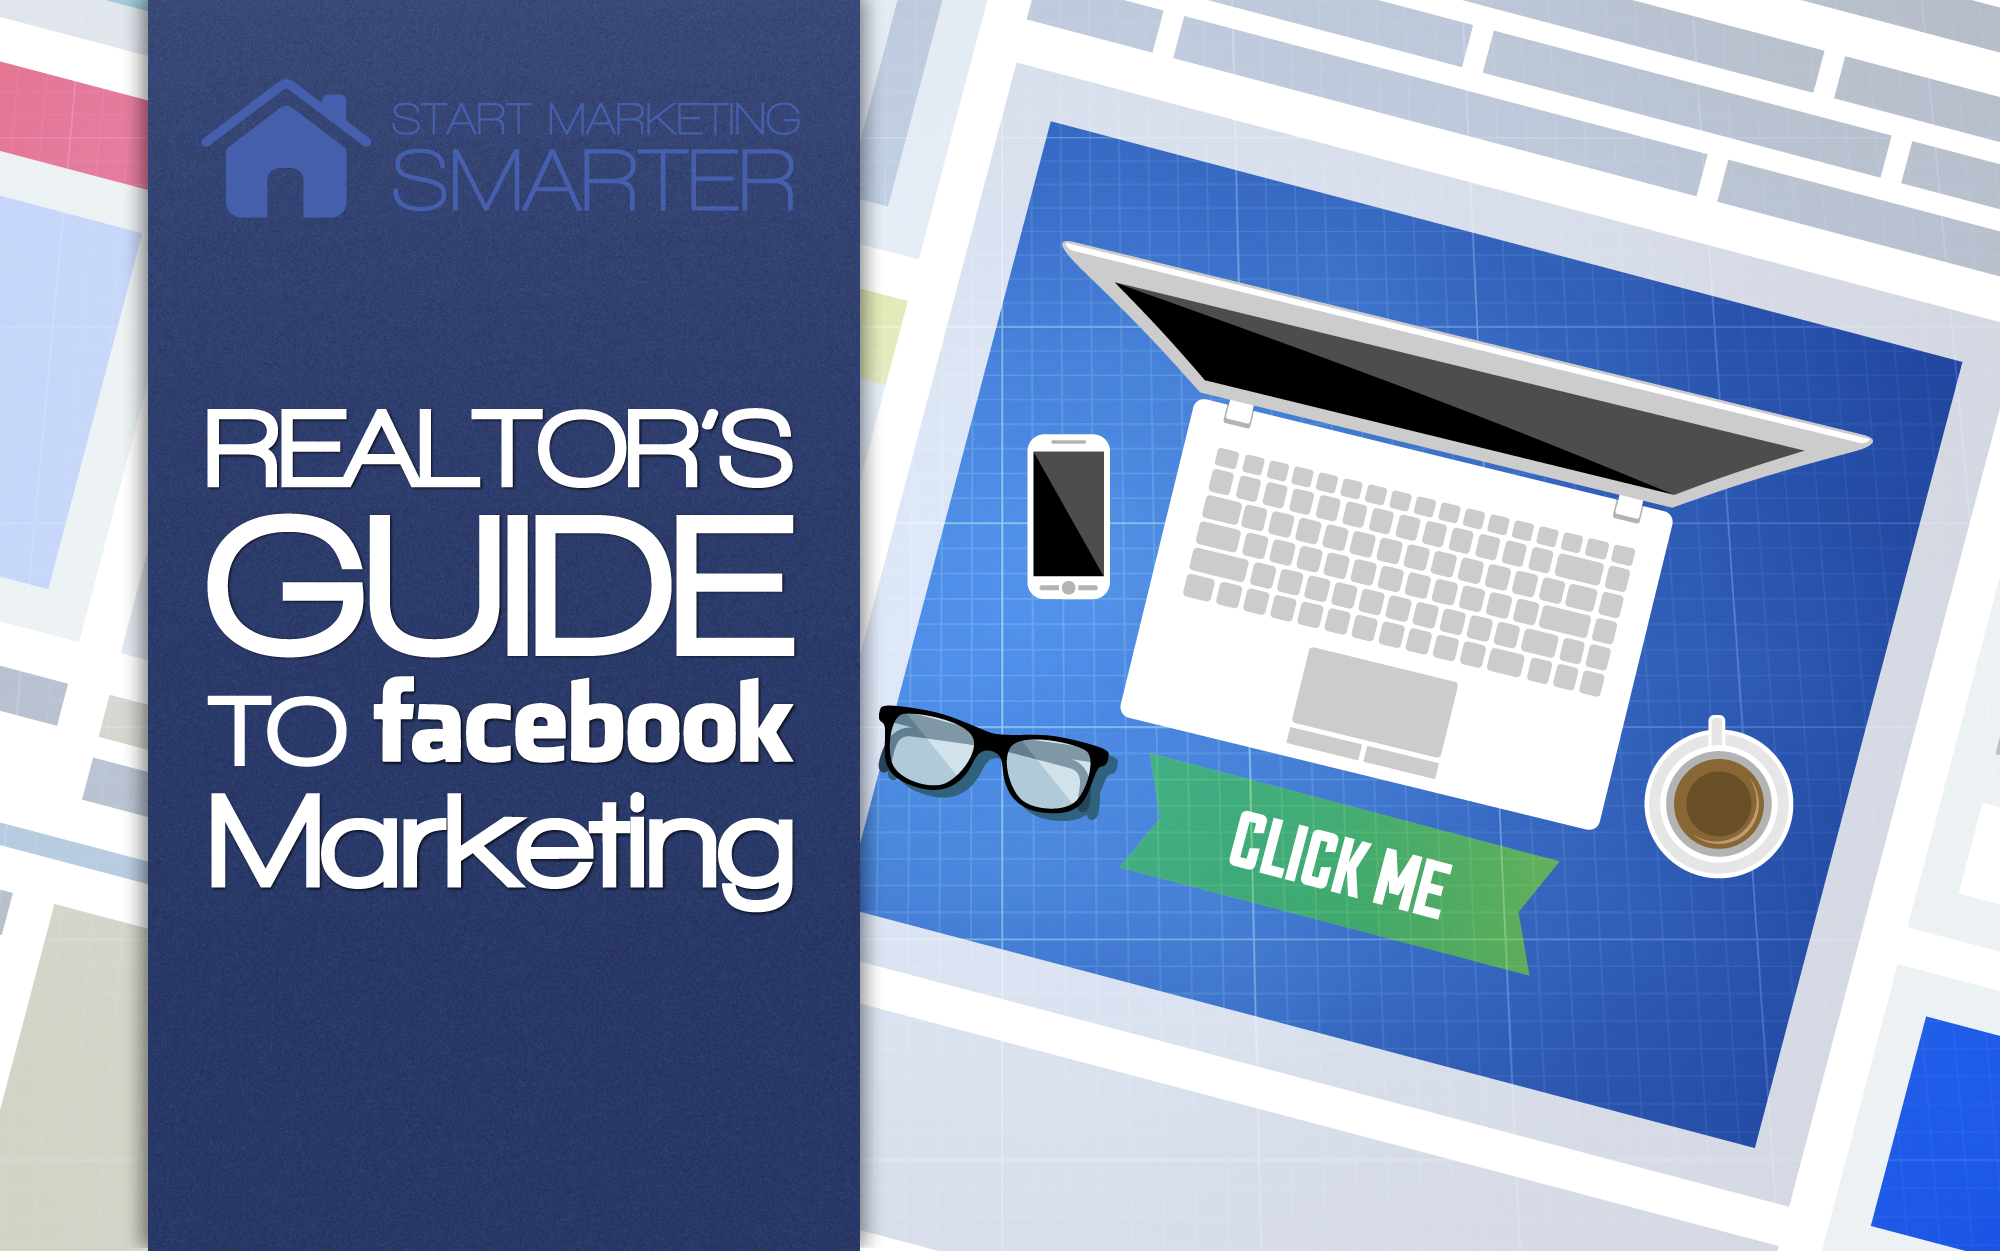 Part 2 of the Realtor's guide to Facebook advertising: Deploying your ads